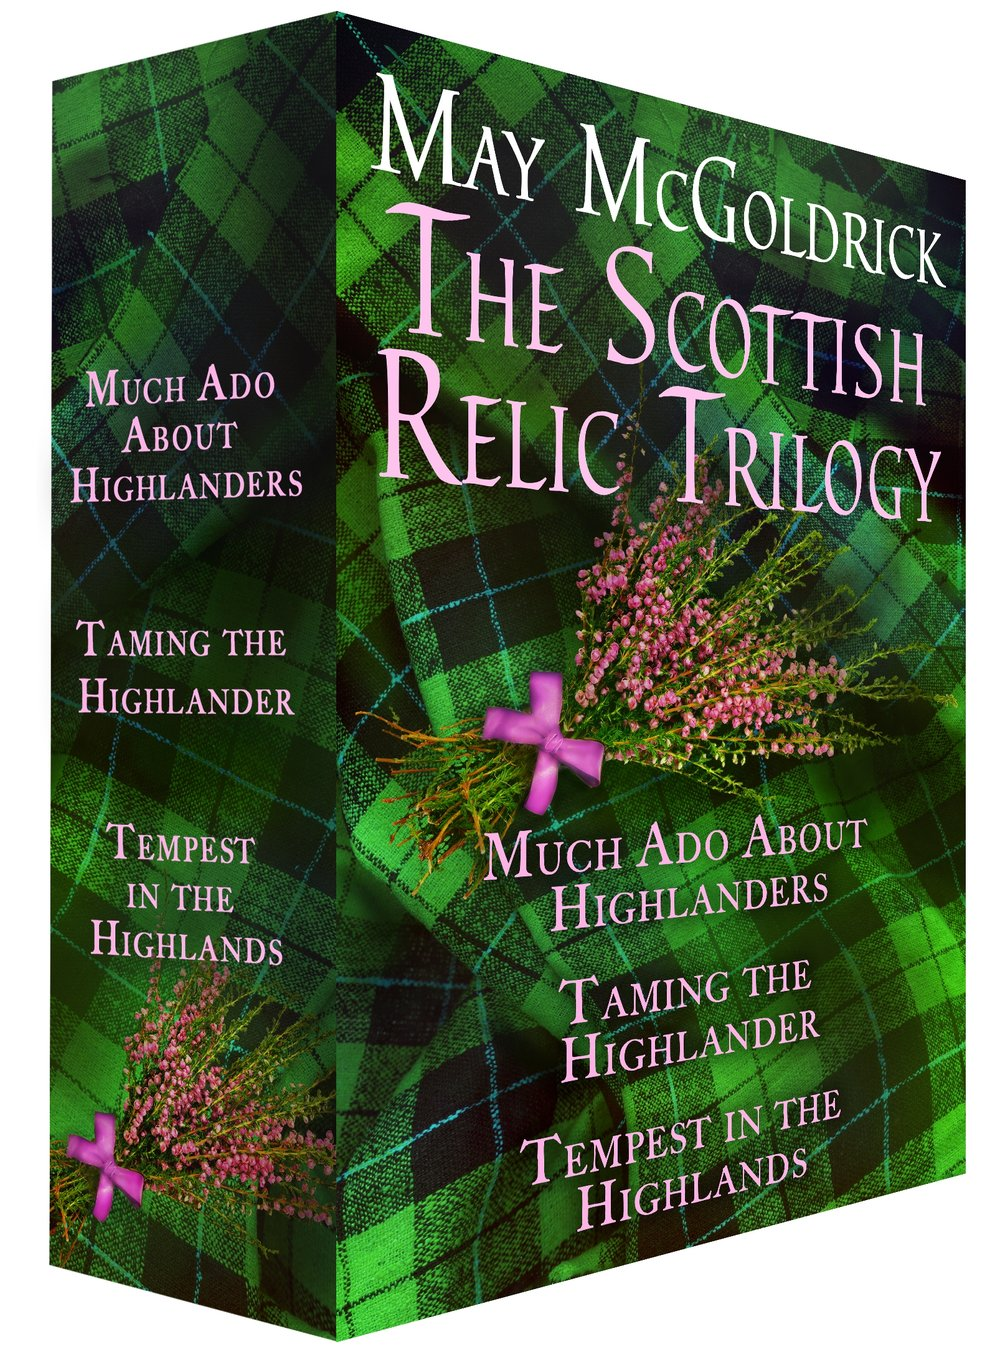 scottish trilogy.jpg